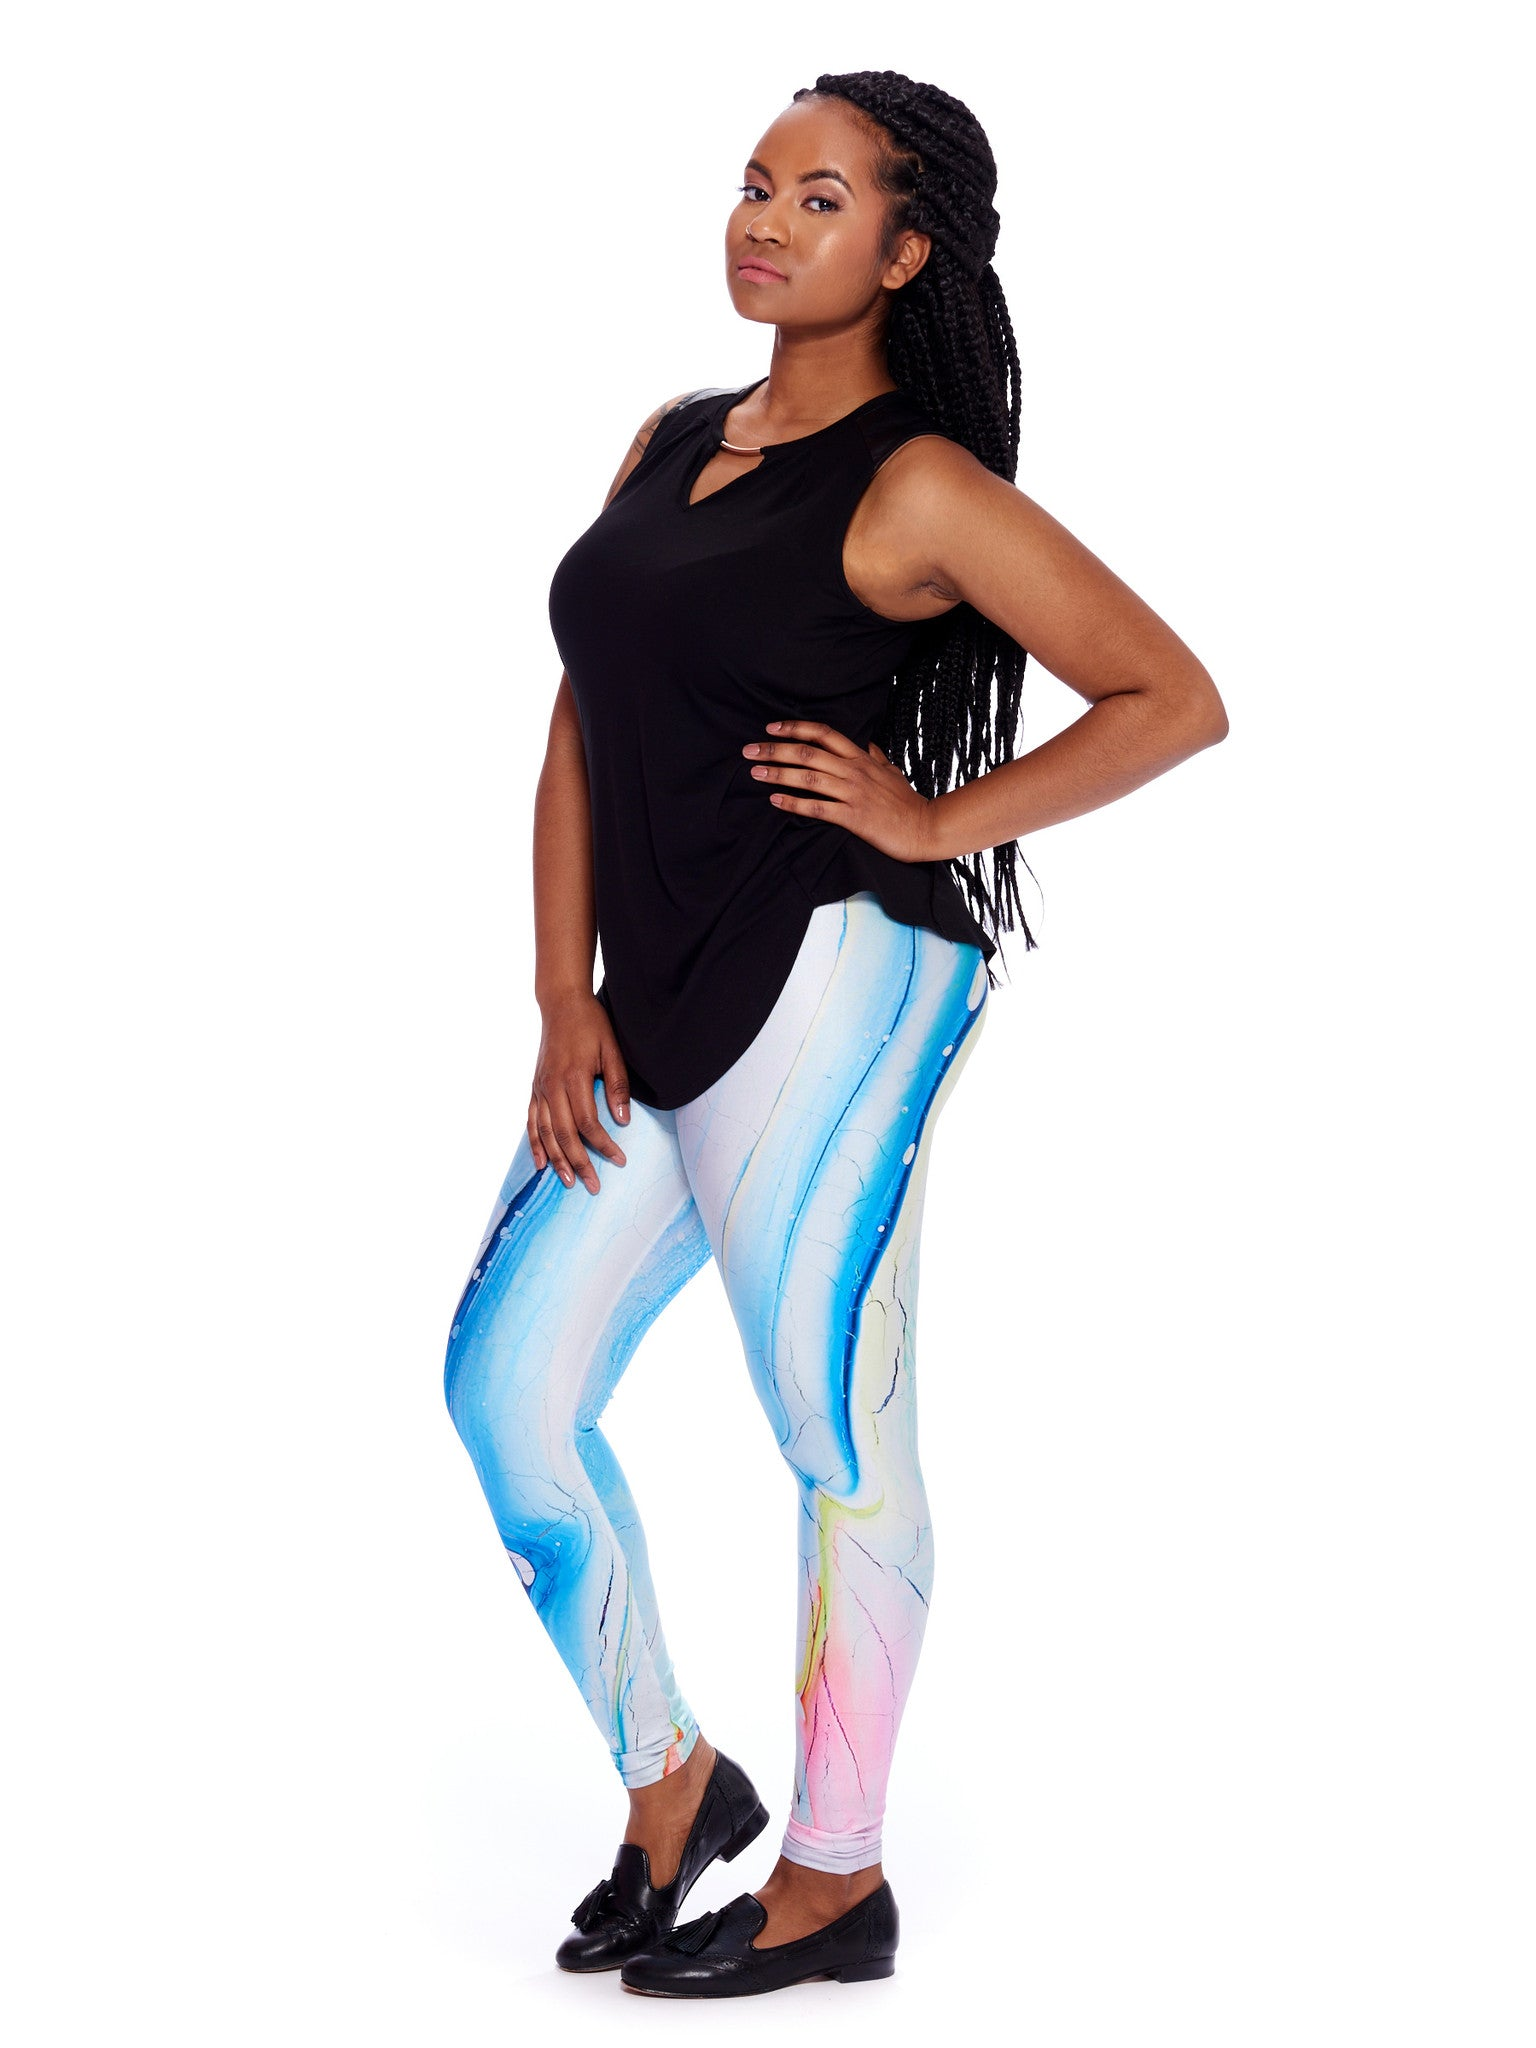 Evanescent Wave Leggings